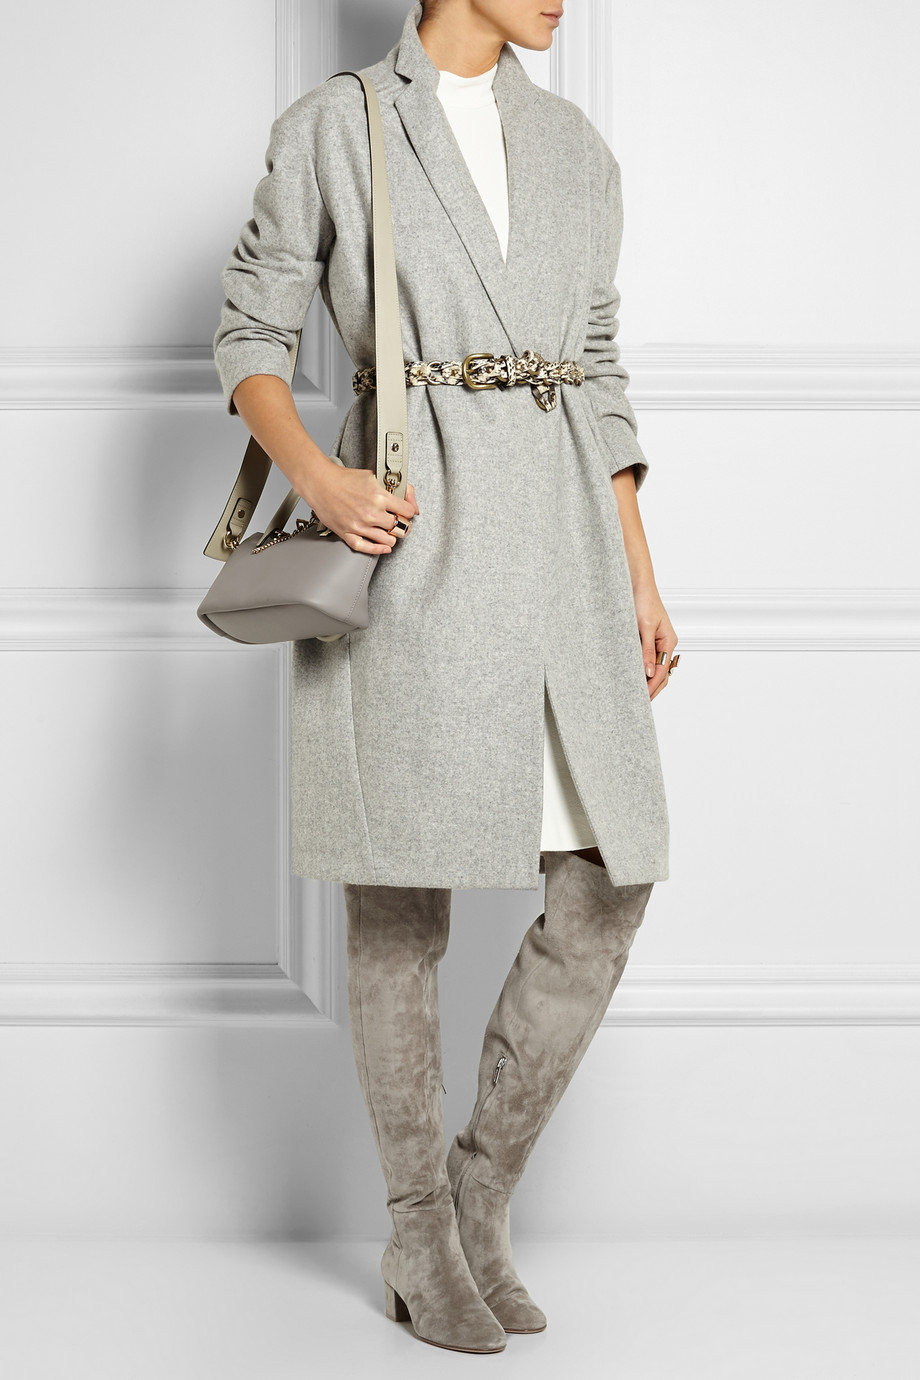 Gianvito rossi Suede Over-The-Knee Boots in Gray | Lyst